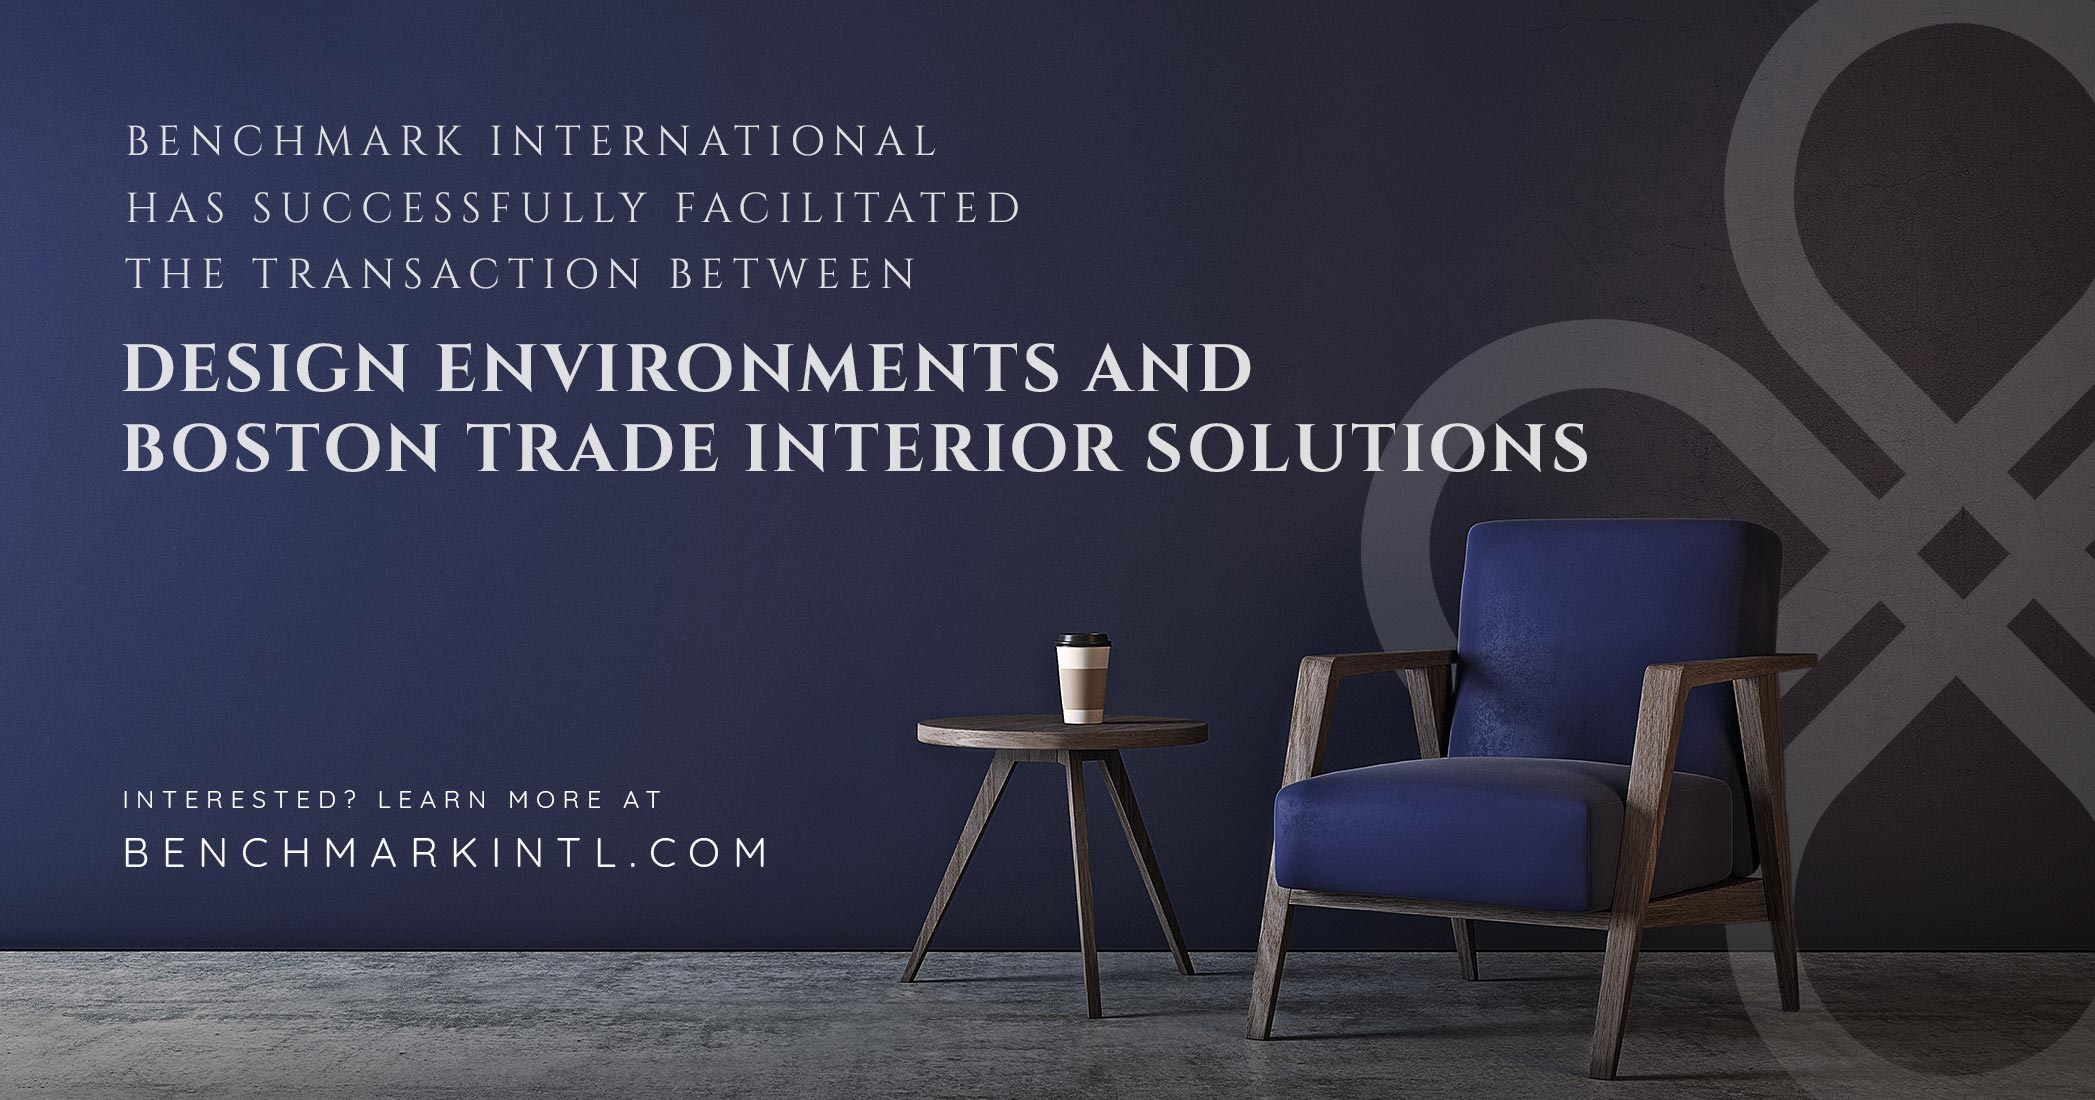 Benchmark International Successfully Facilitated the Transaction Between Design Environments and Boston Trade Interior Solutions